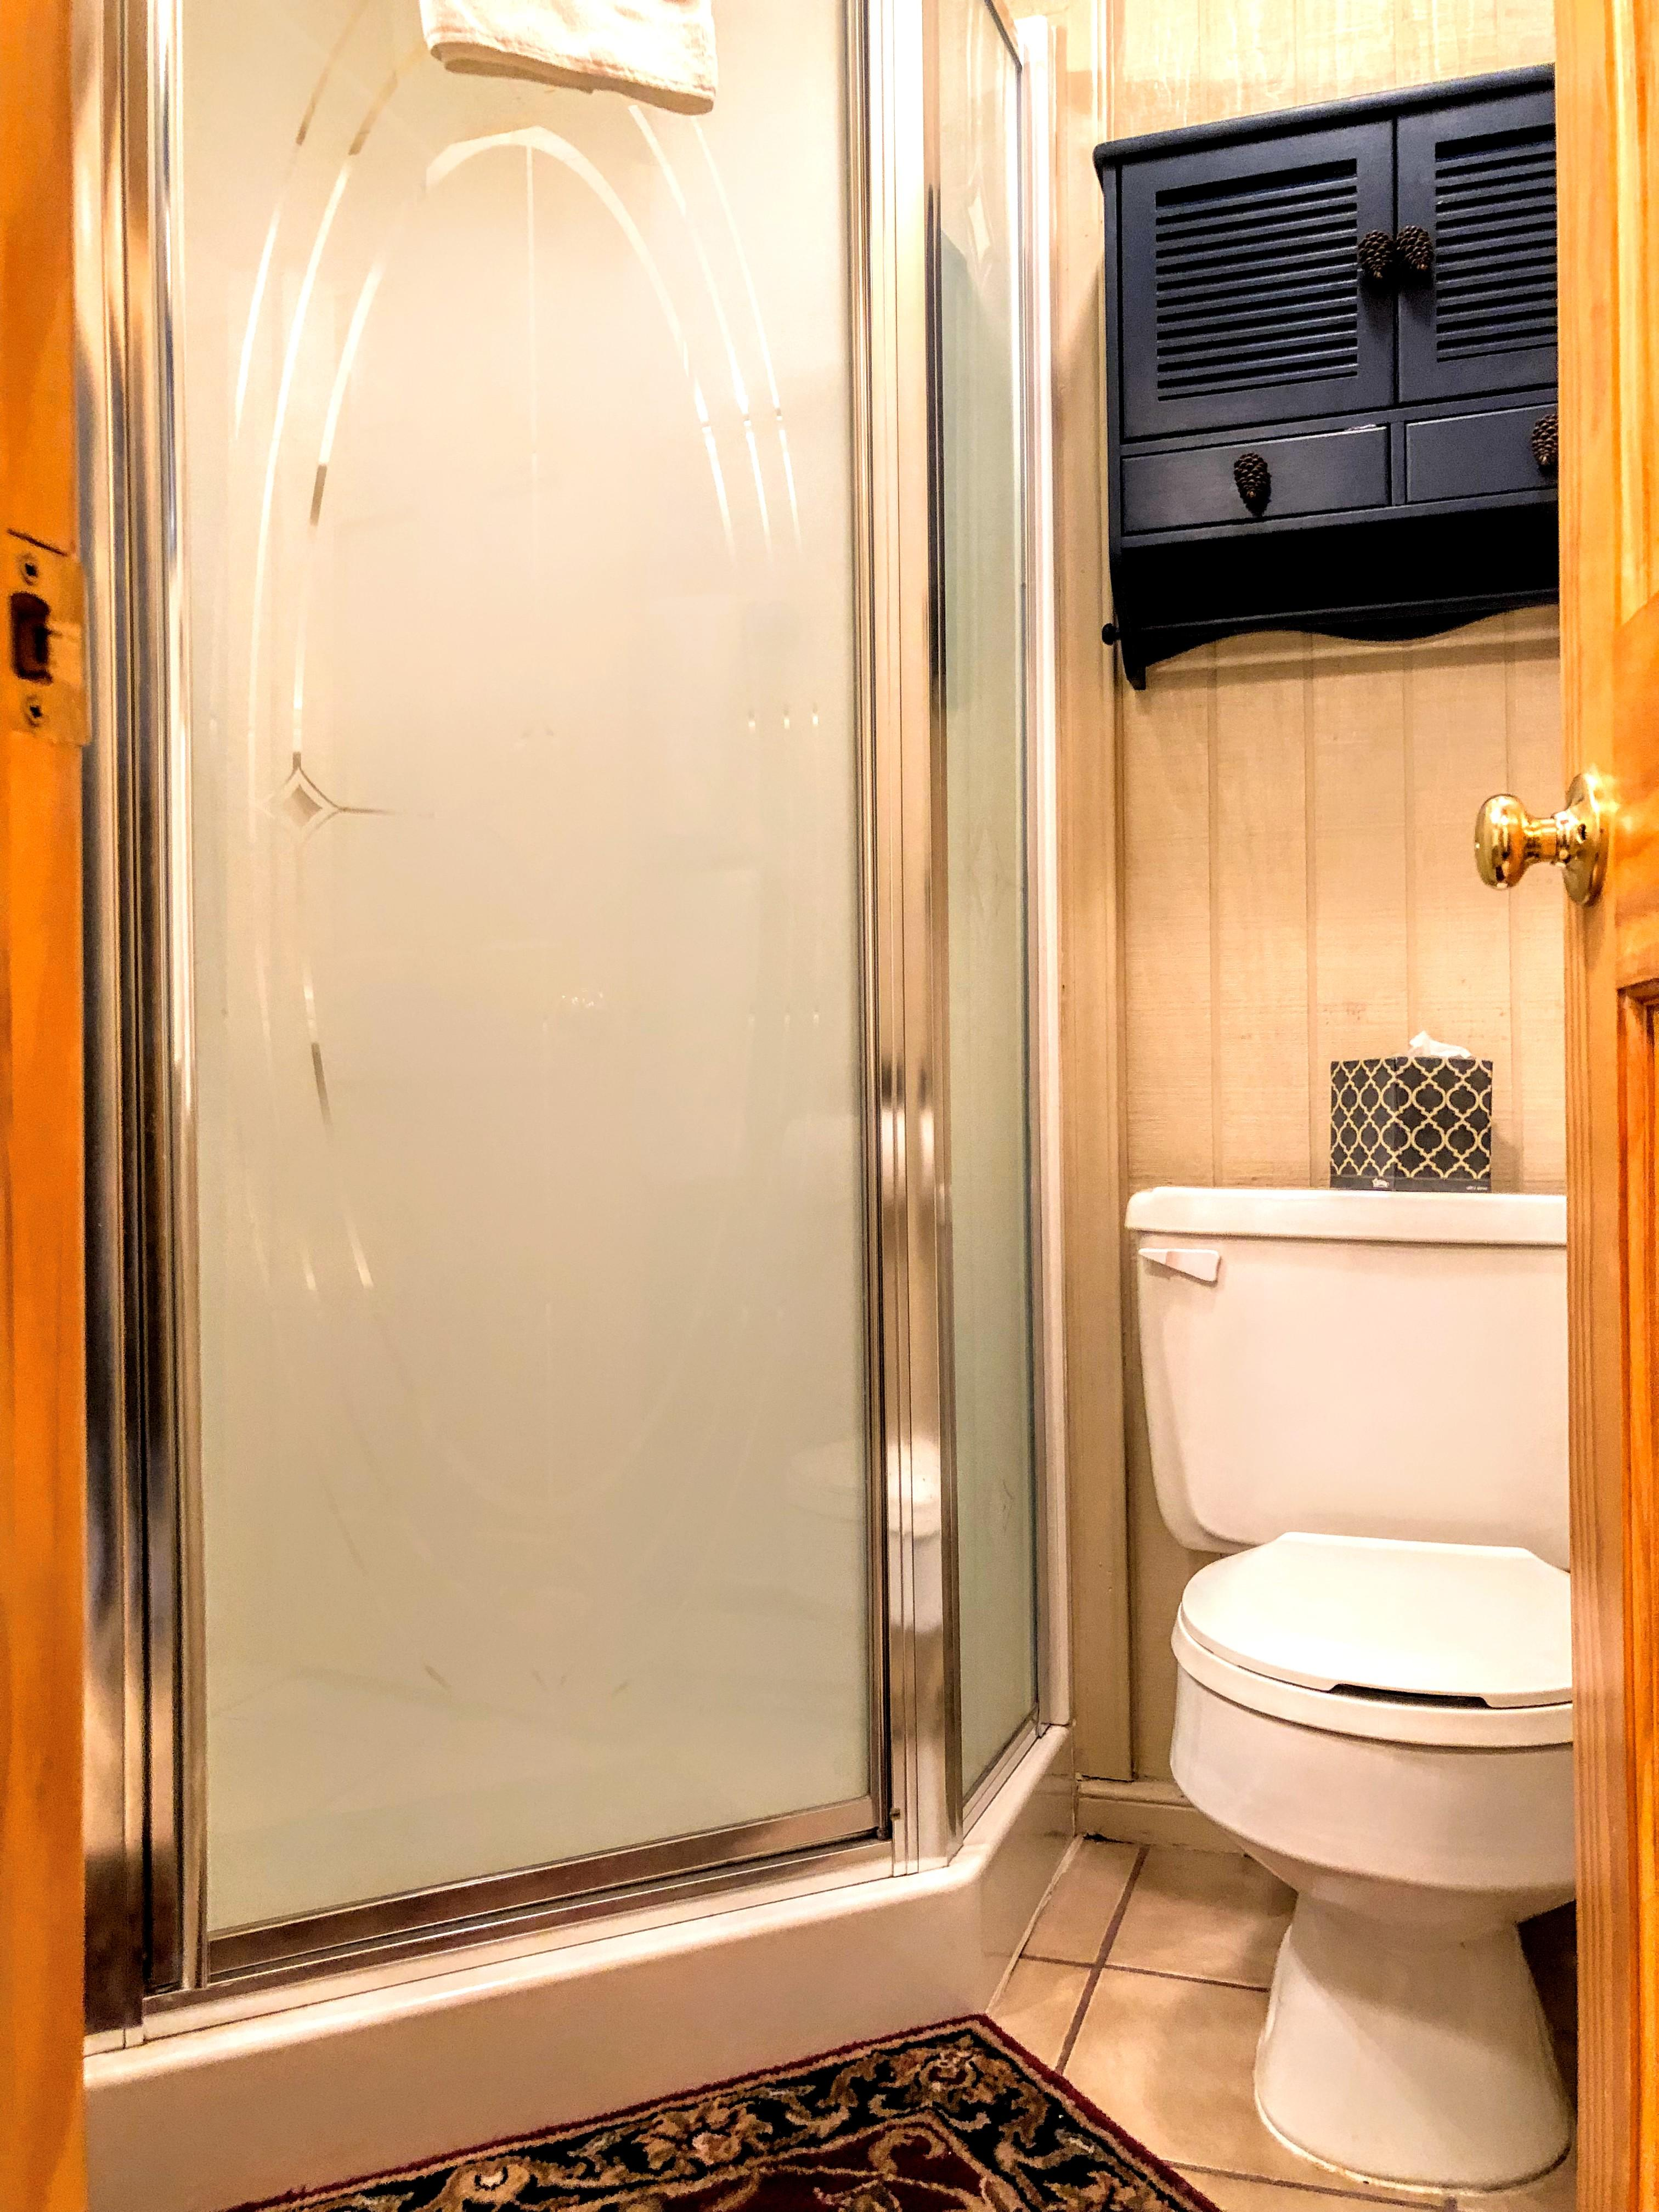 Full second bathroom in hallway next to second bedroom; has a shower enclosure.